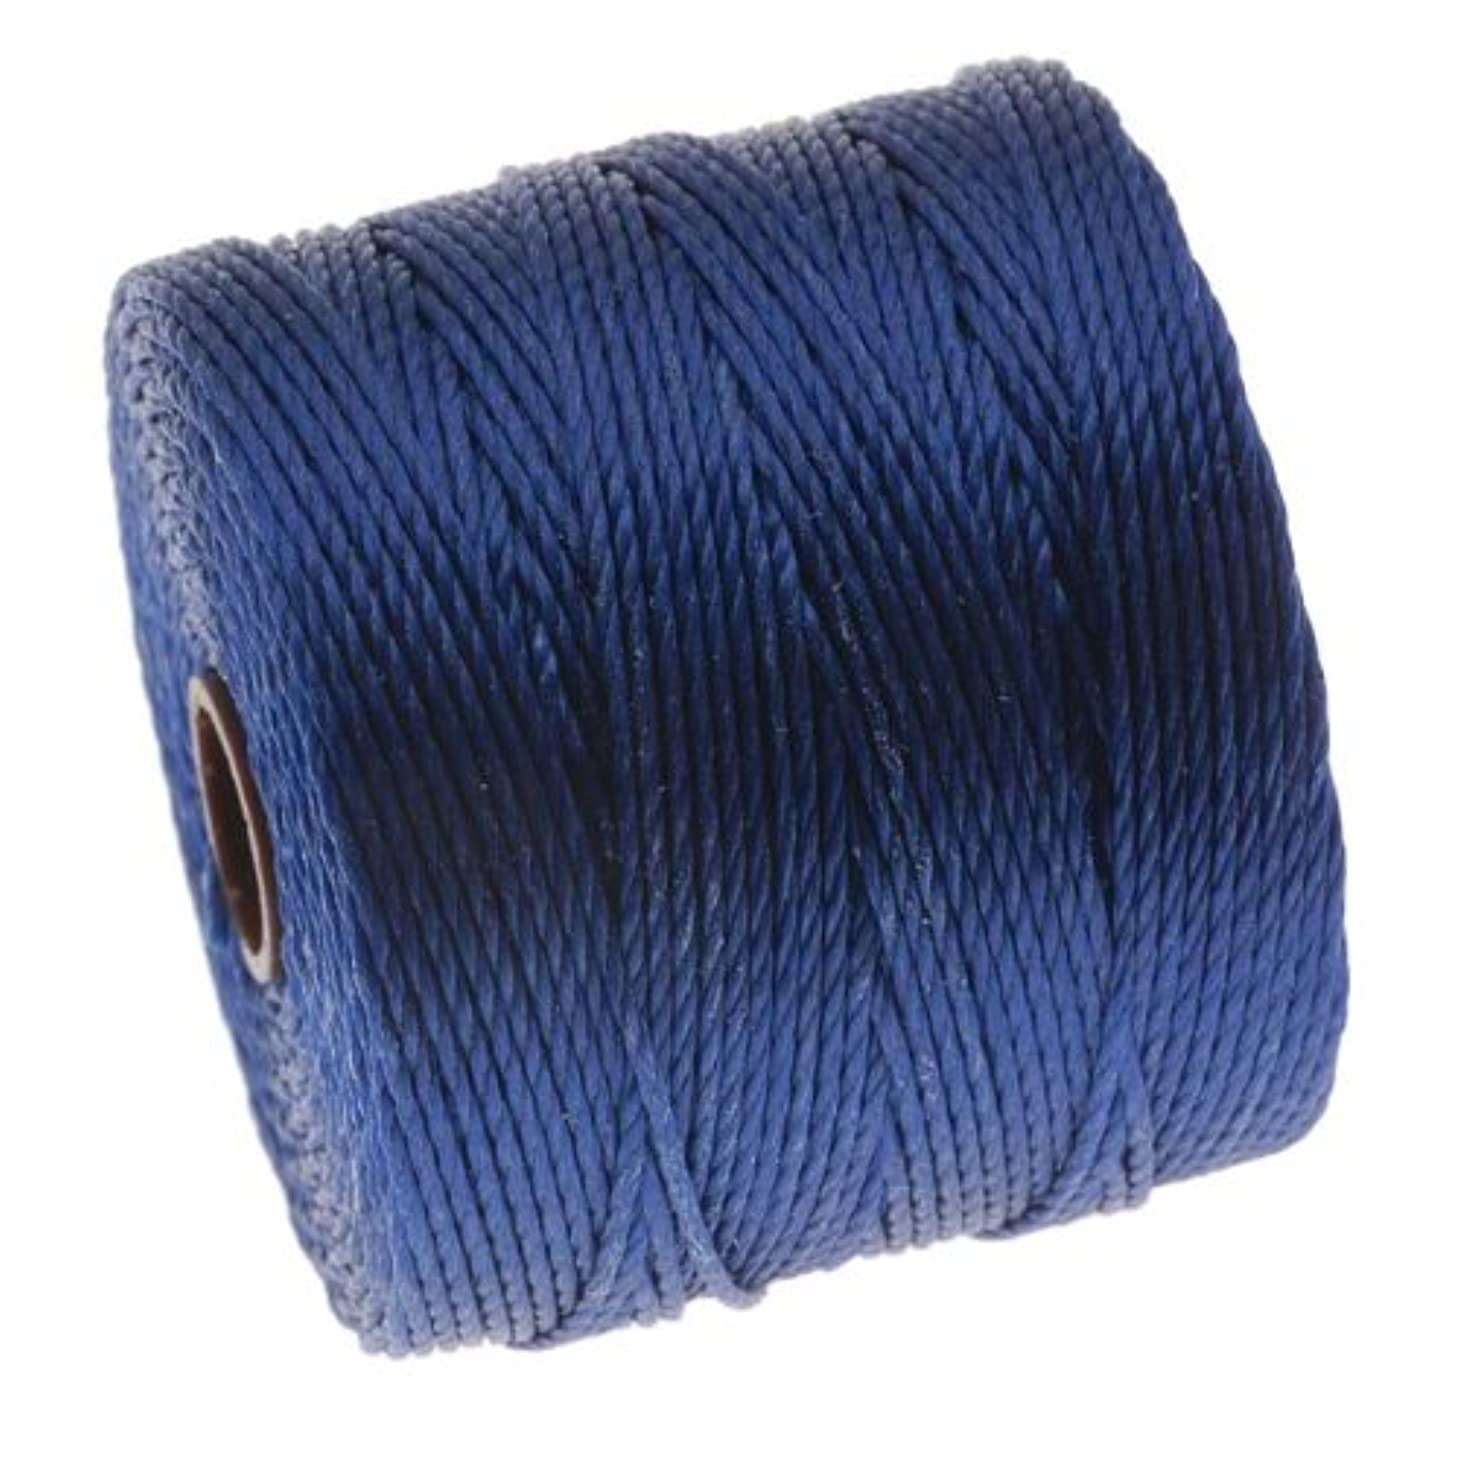 BeadSmith Super-Lon Cord - Size #18 Twisted Nylon - Capri Blue / 77 Yard Spool